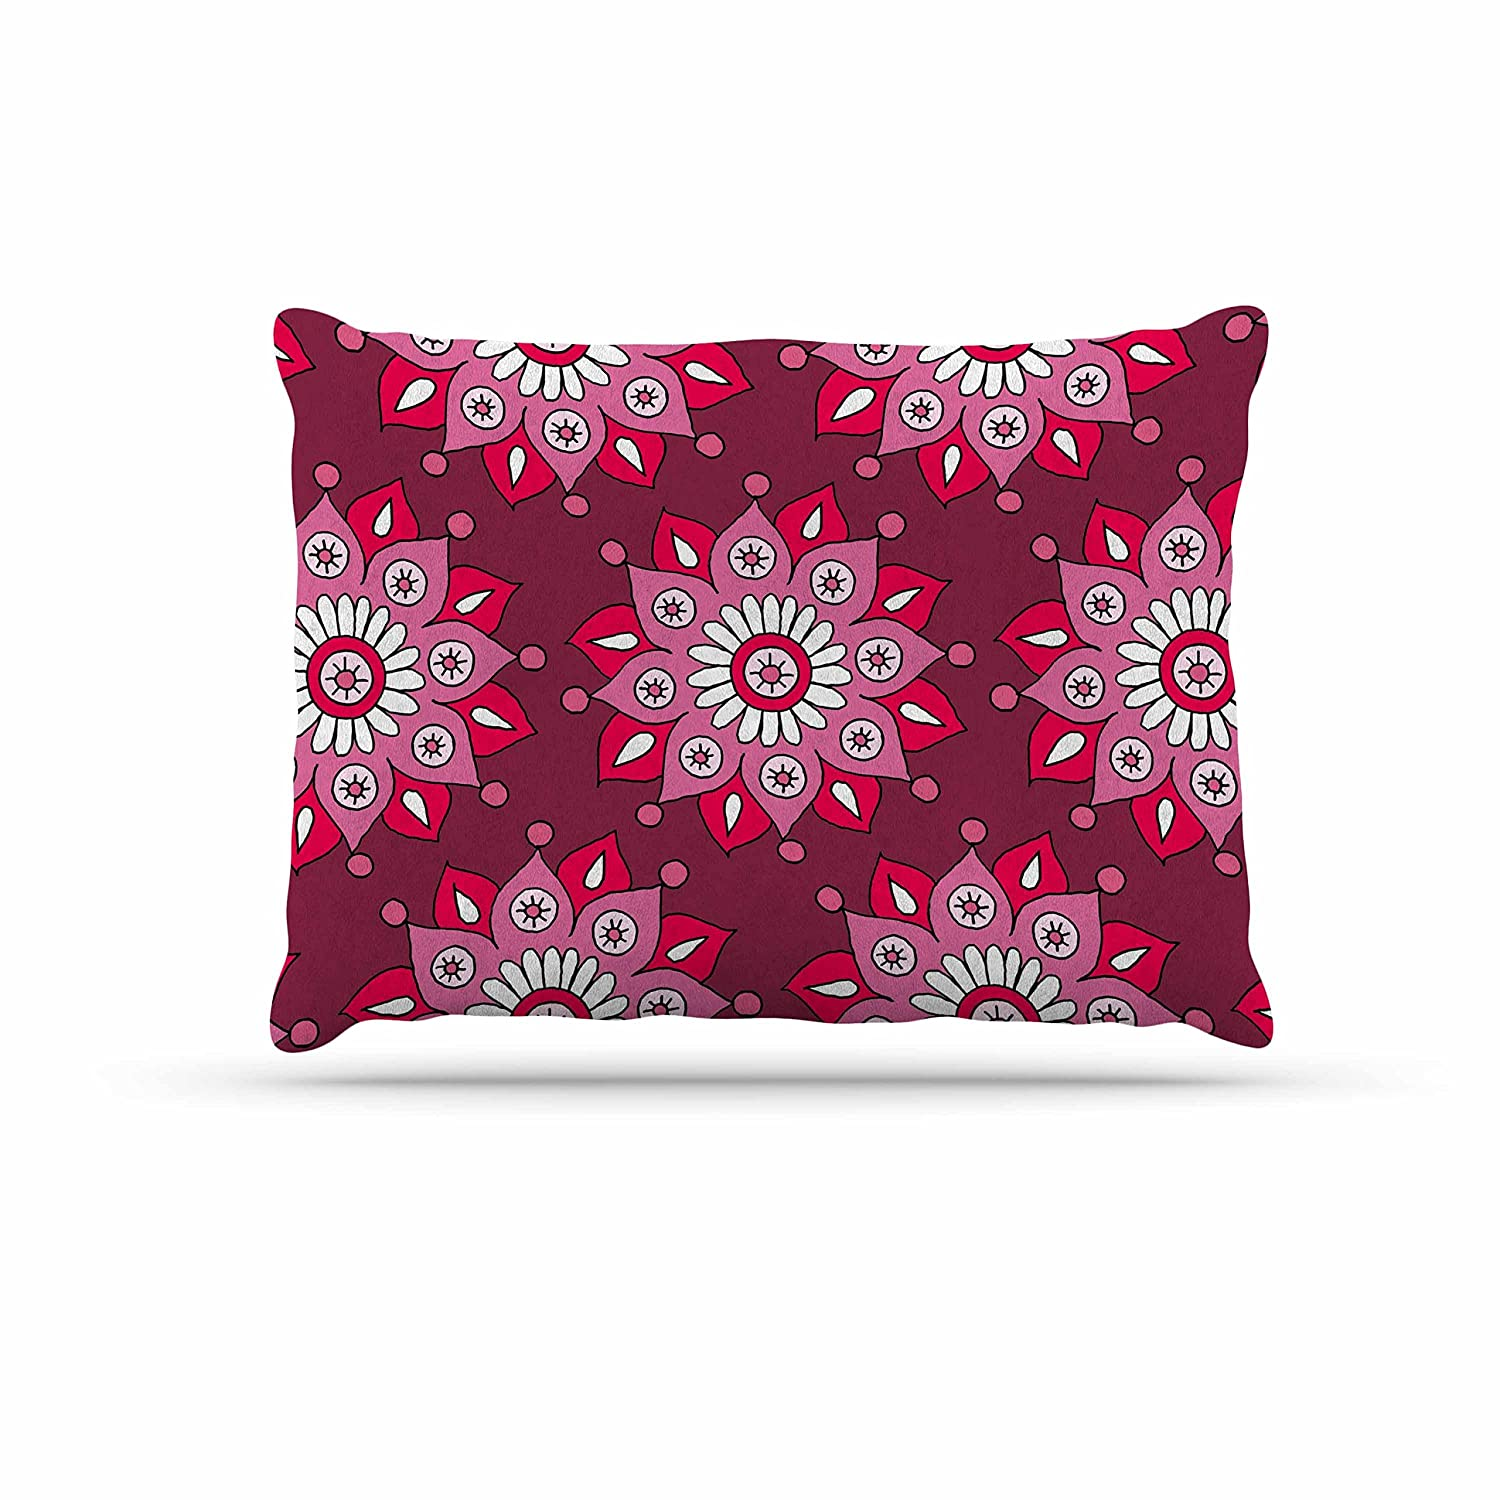 KESS InHouse Sarah Oelerich Teal Tribal Pink Purple Dog Bed, 50  x 40